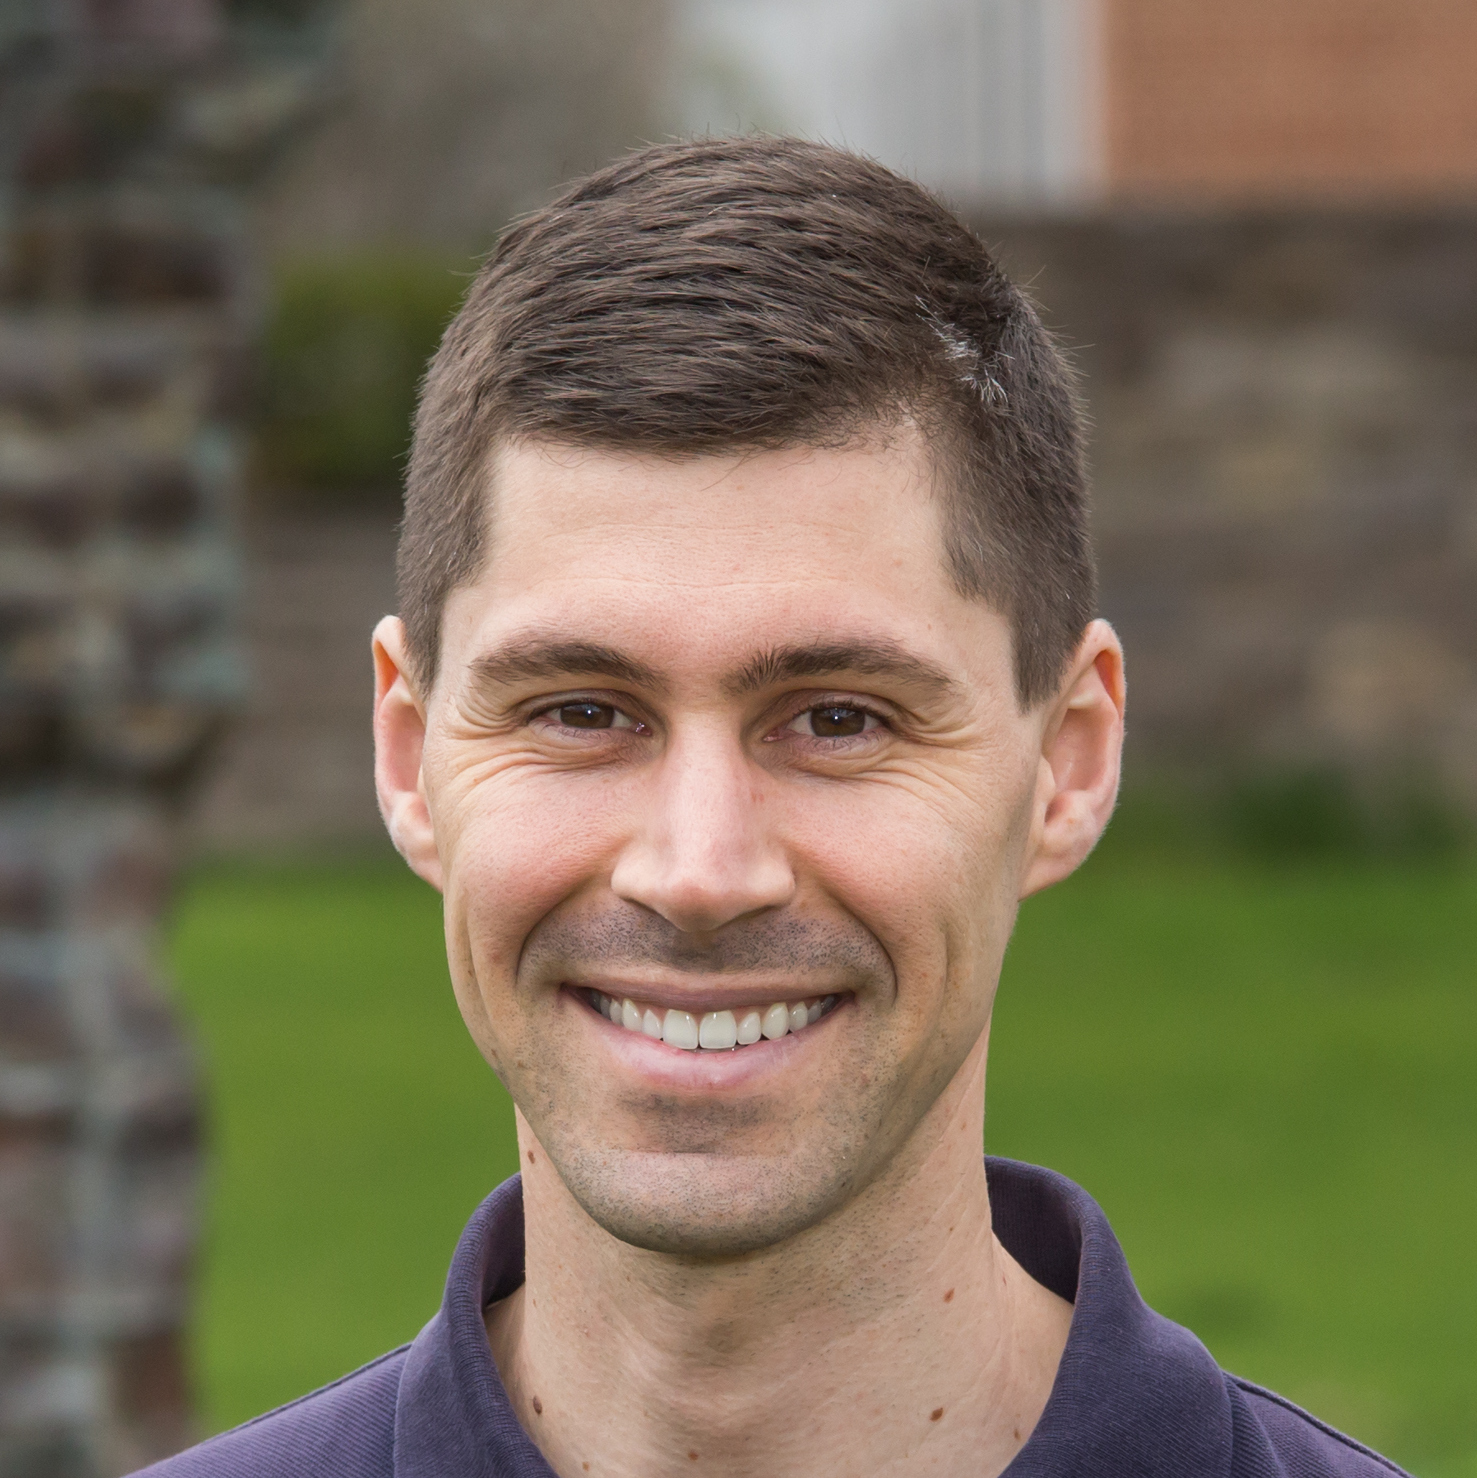 Ryan Edwards [Graduate Student] - A CEE grad student with work experience in the mining industry and a research focus on energy and climate